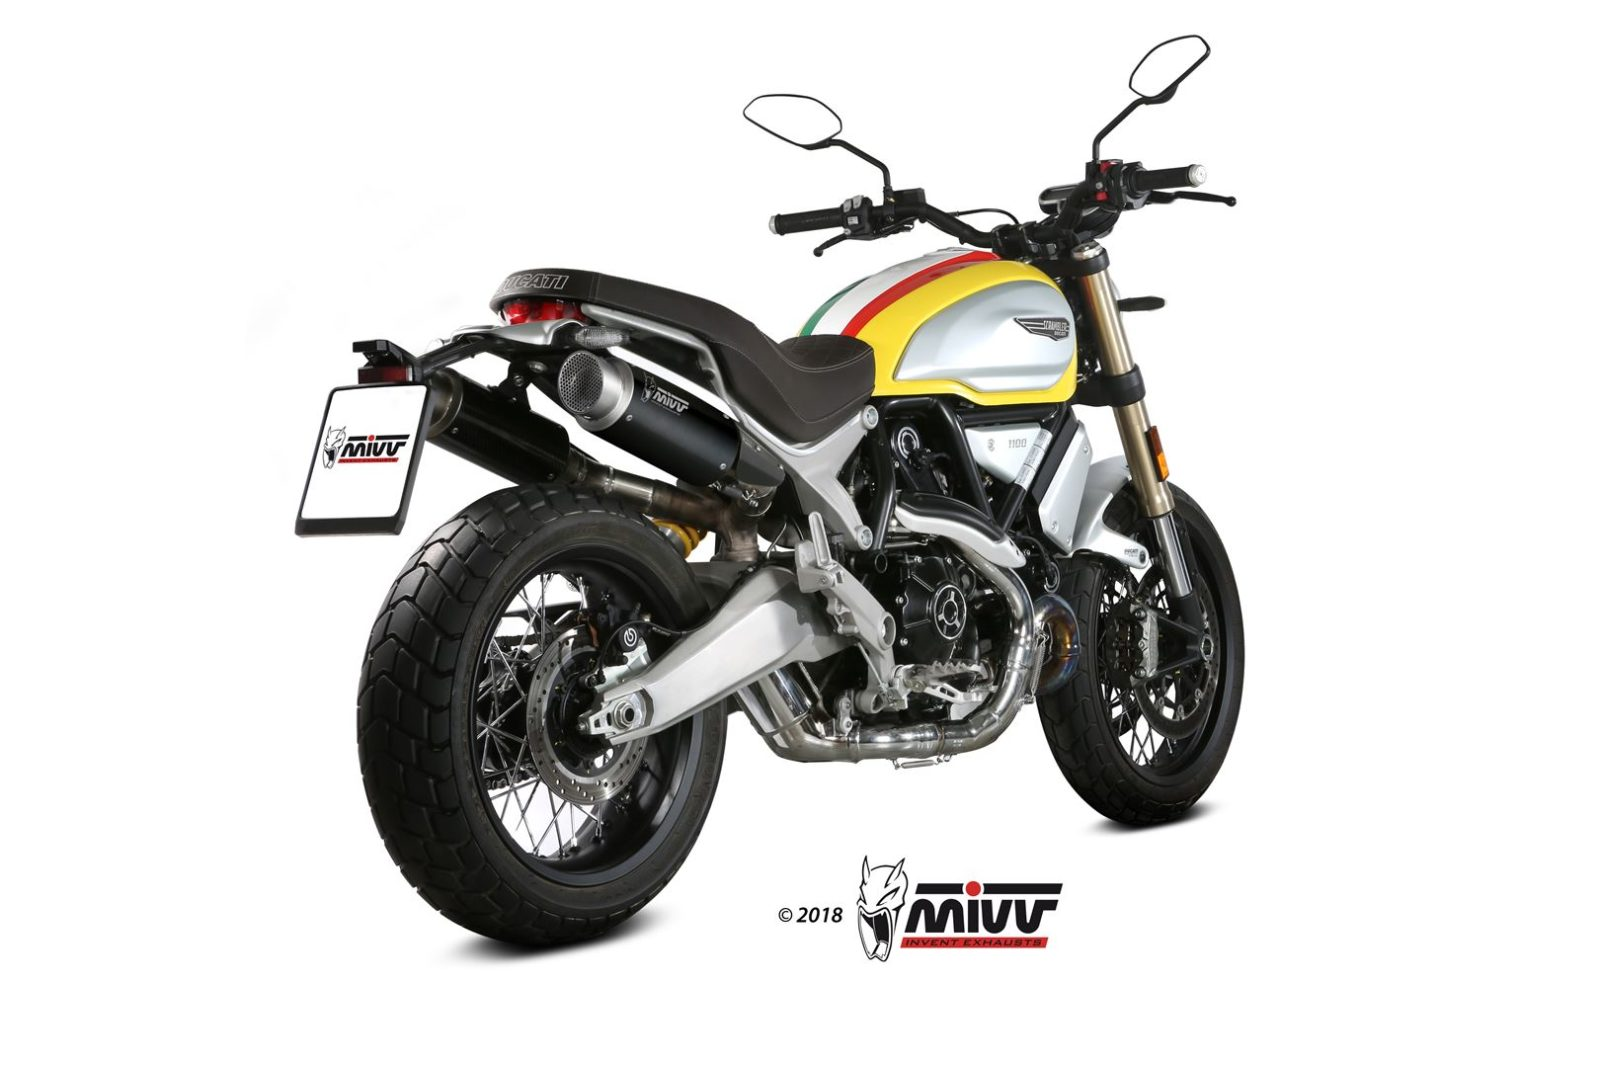 Ducati Scrambler 1100 Exhaust Mivv Gp Pro Black Stainless Steel D